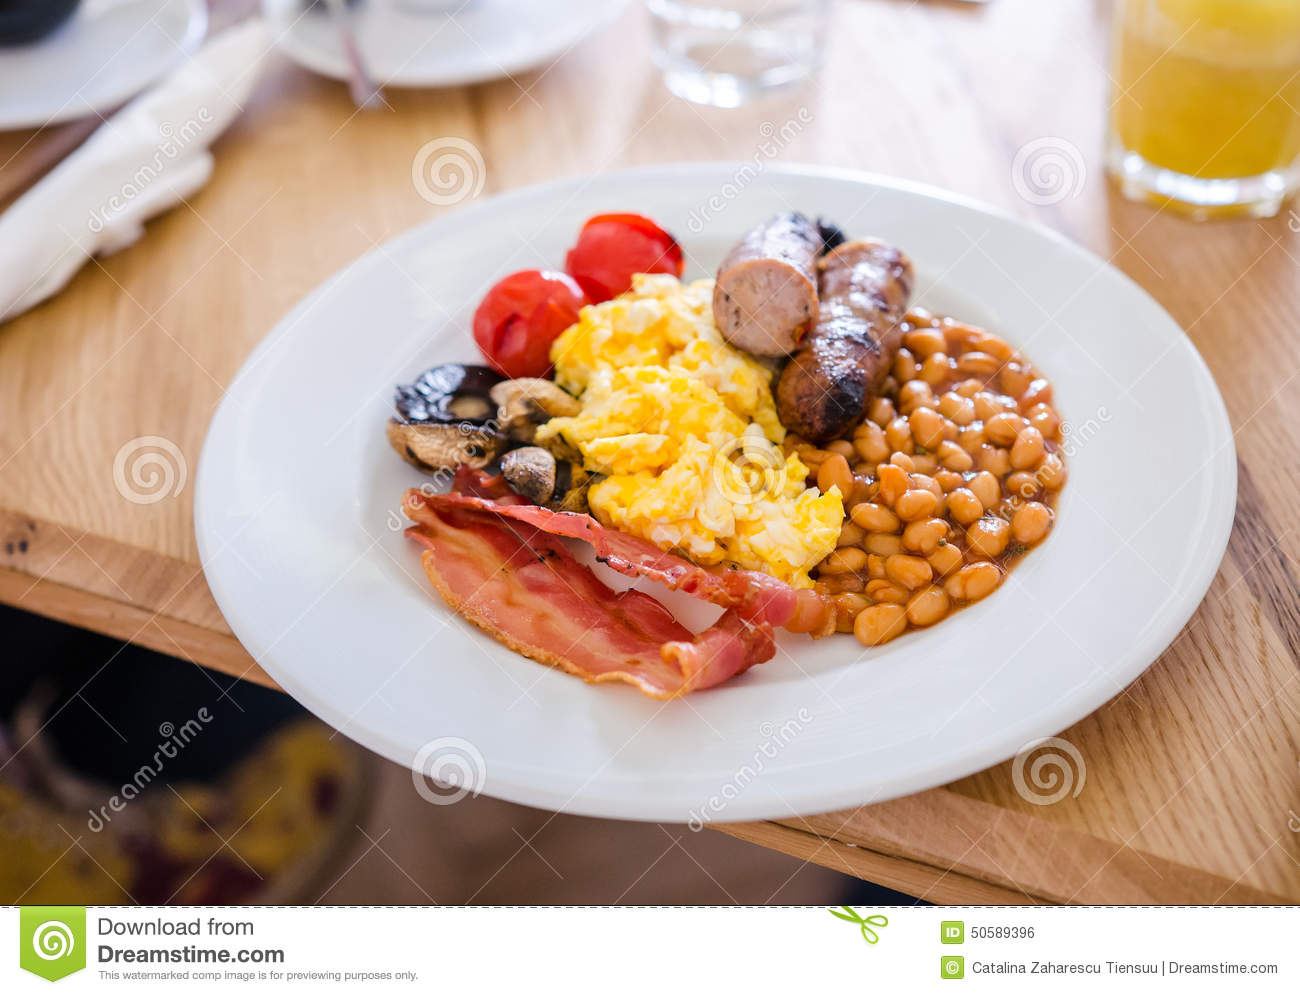 English Breakfast At The Restaurant Stock Photo - Image of tomatoes